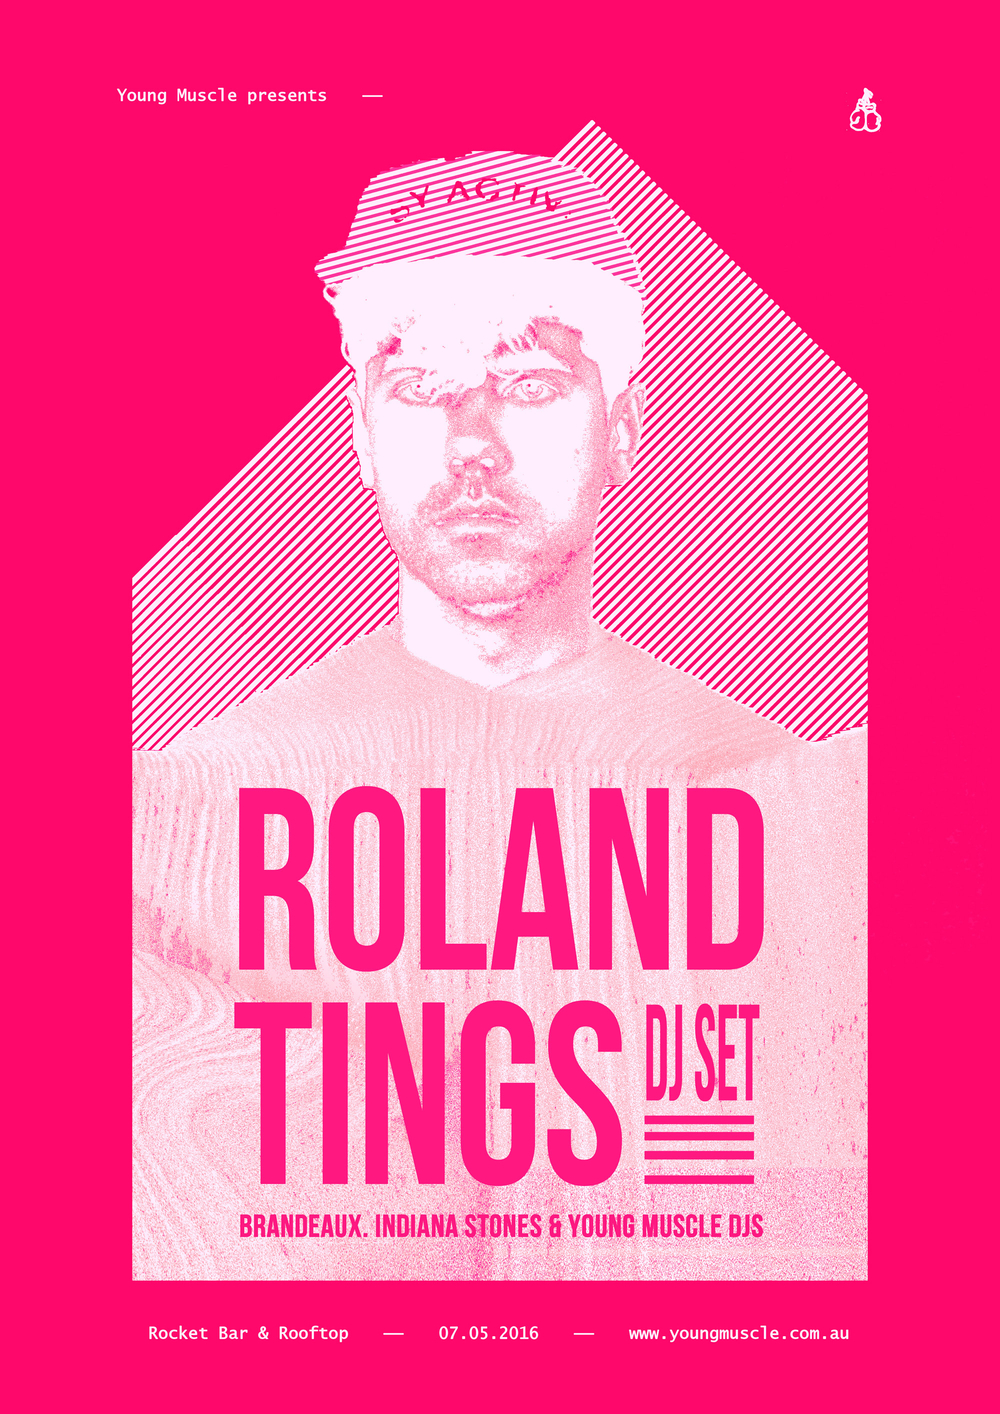 YOUNG MUSCLE MAY 7 ROLAND TINGS v2.jpg